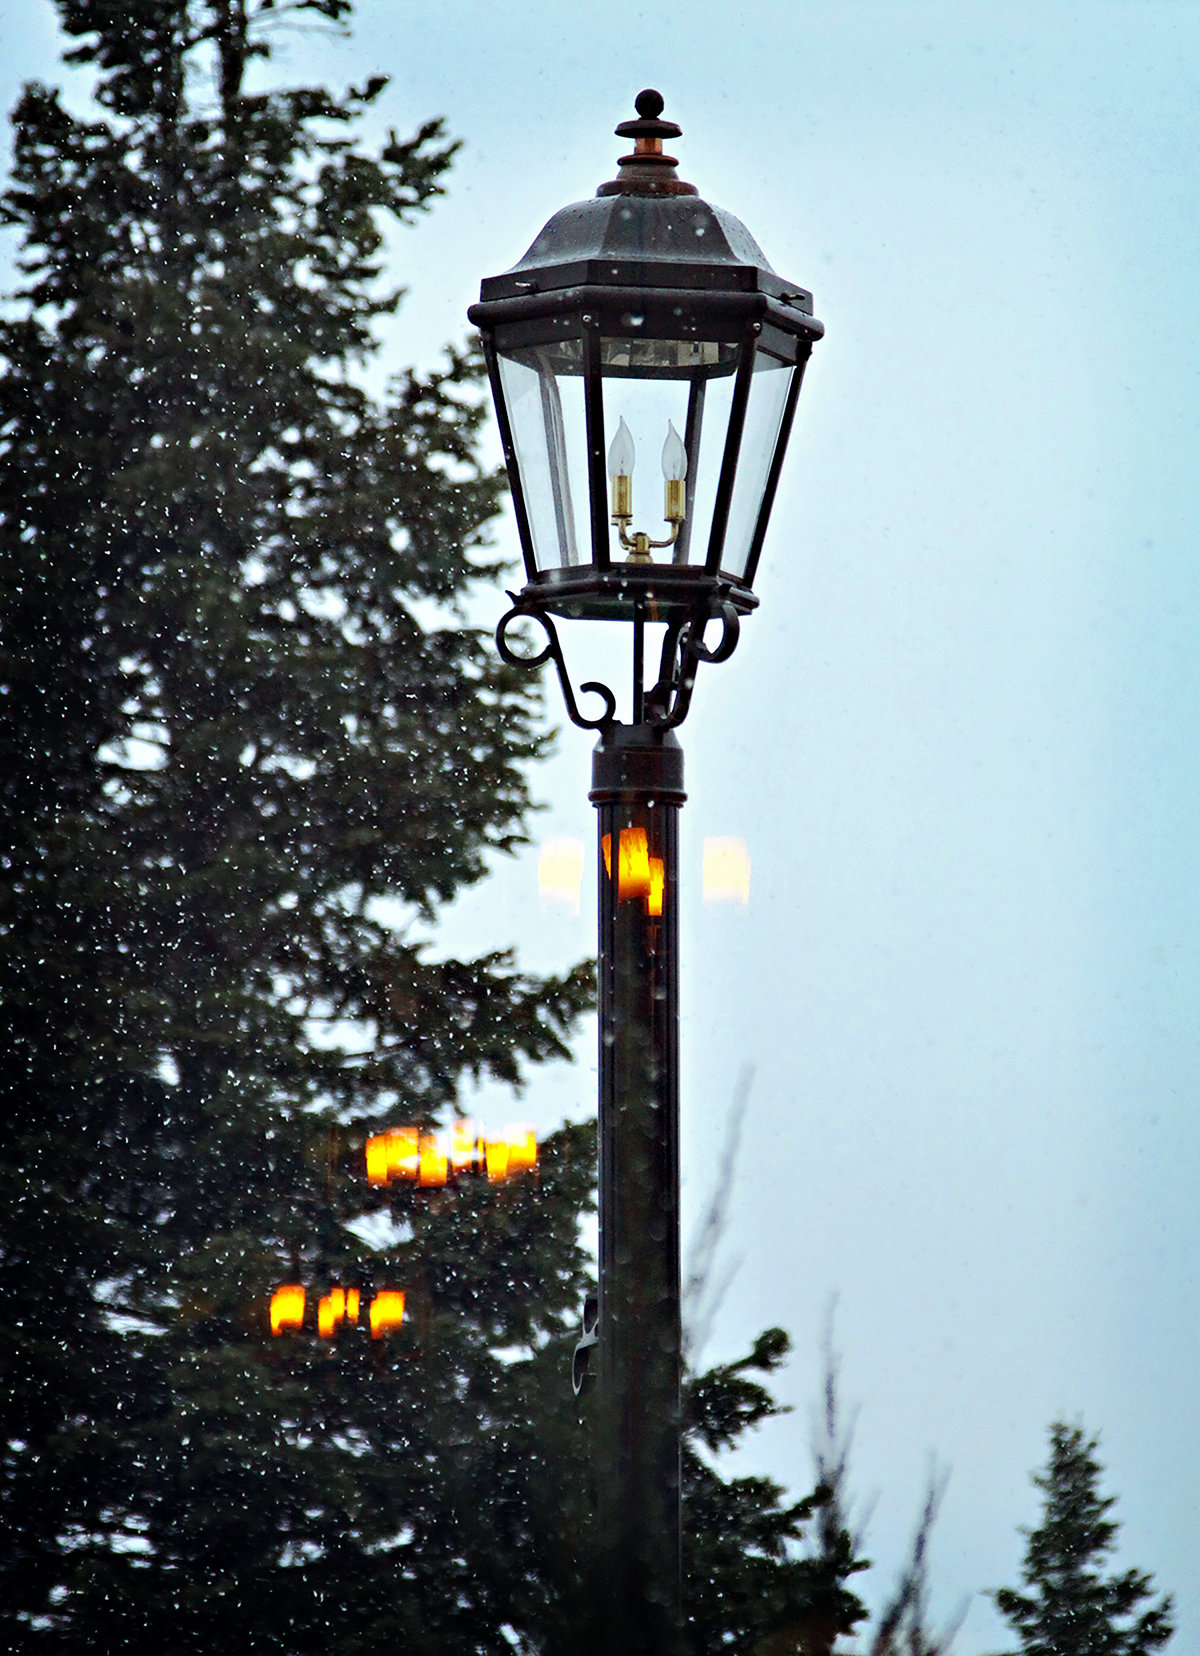 Narnian Lamppost - Imagination Redeemed 2017 v2